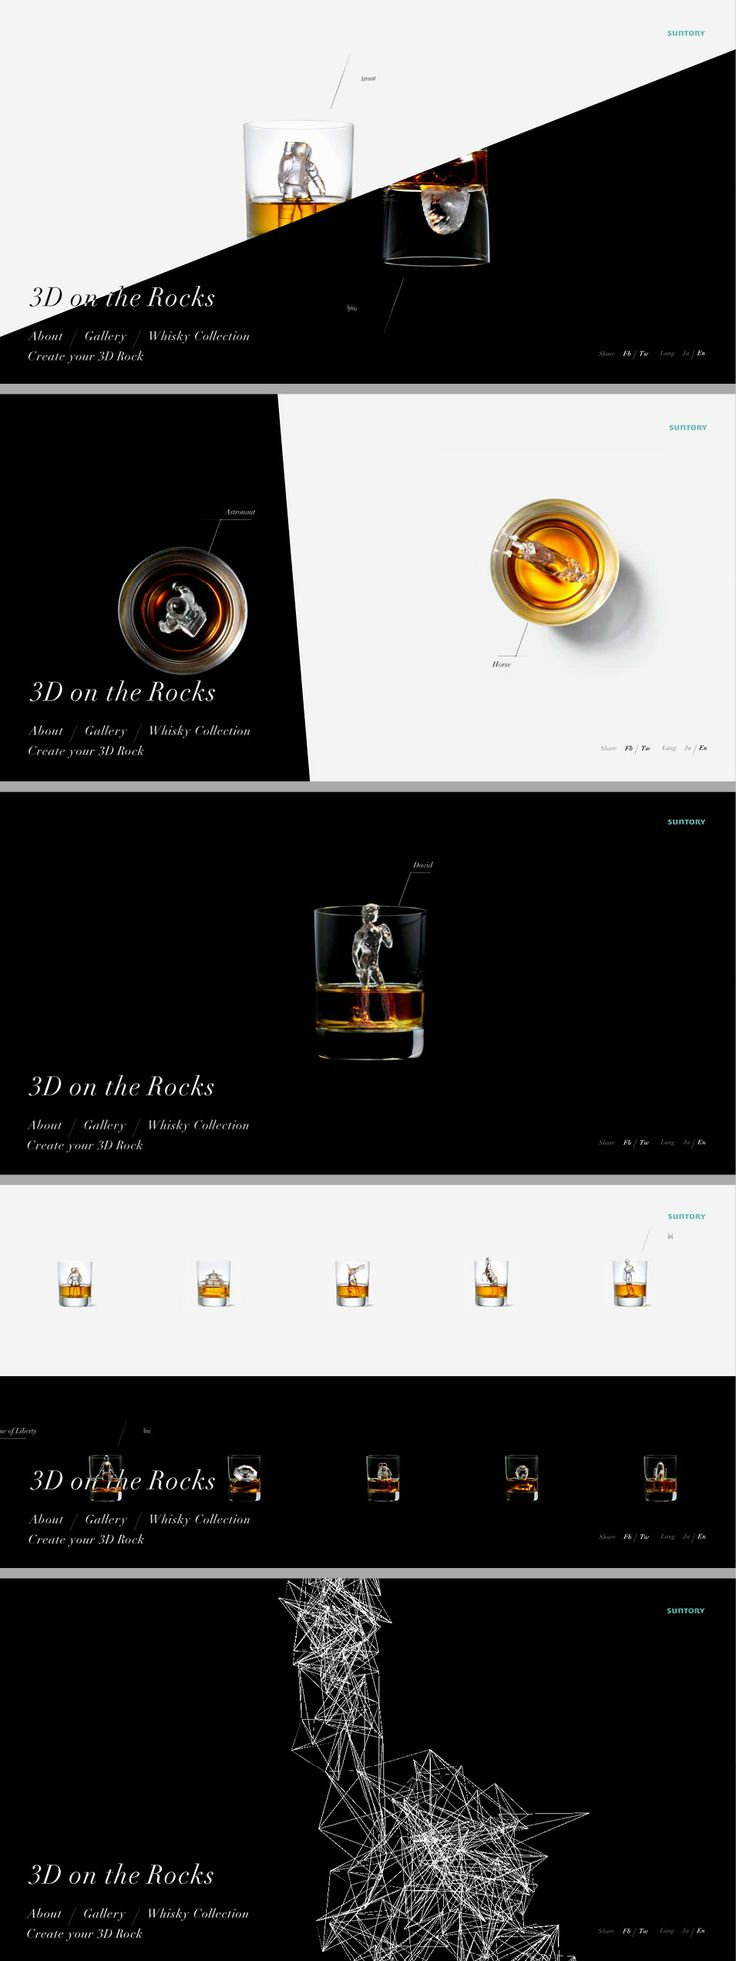 Sculpted ice cubes for japanese whiskey brand Suntory. Great website design on top of beautiful photography.